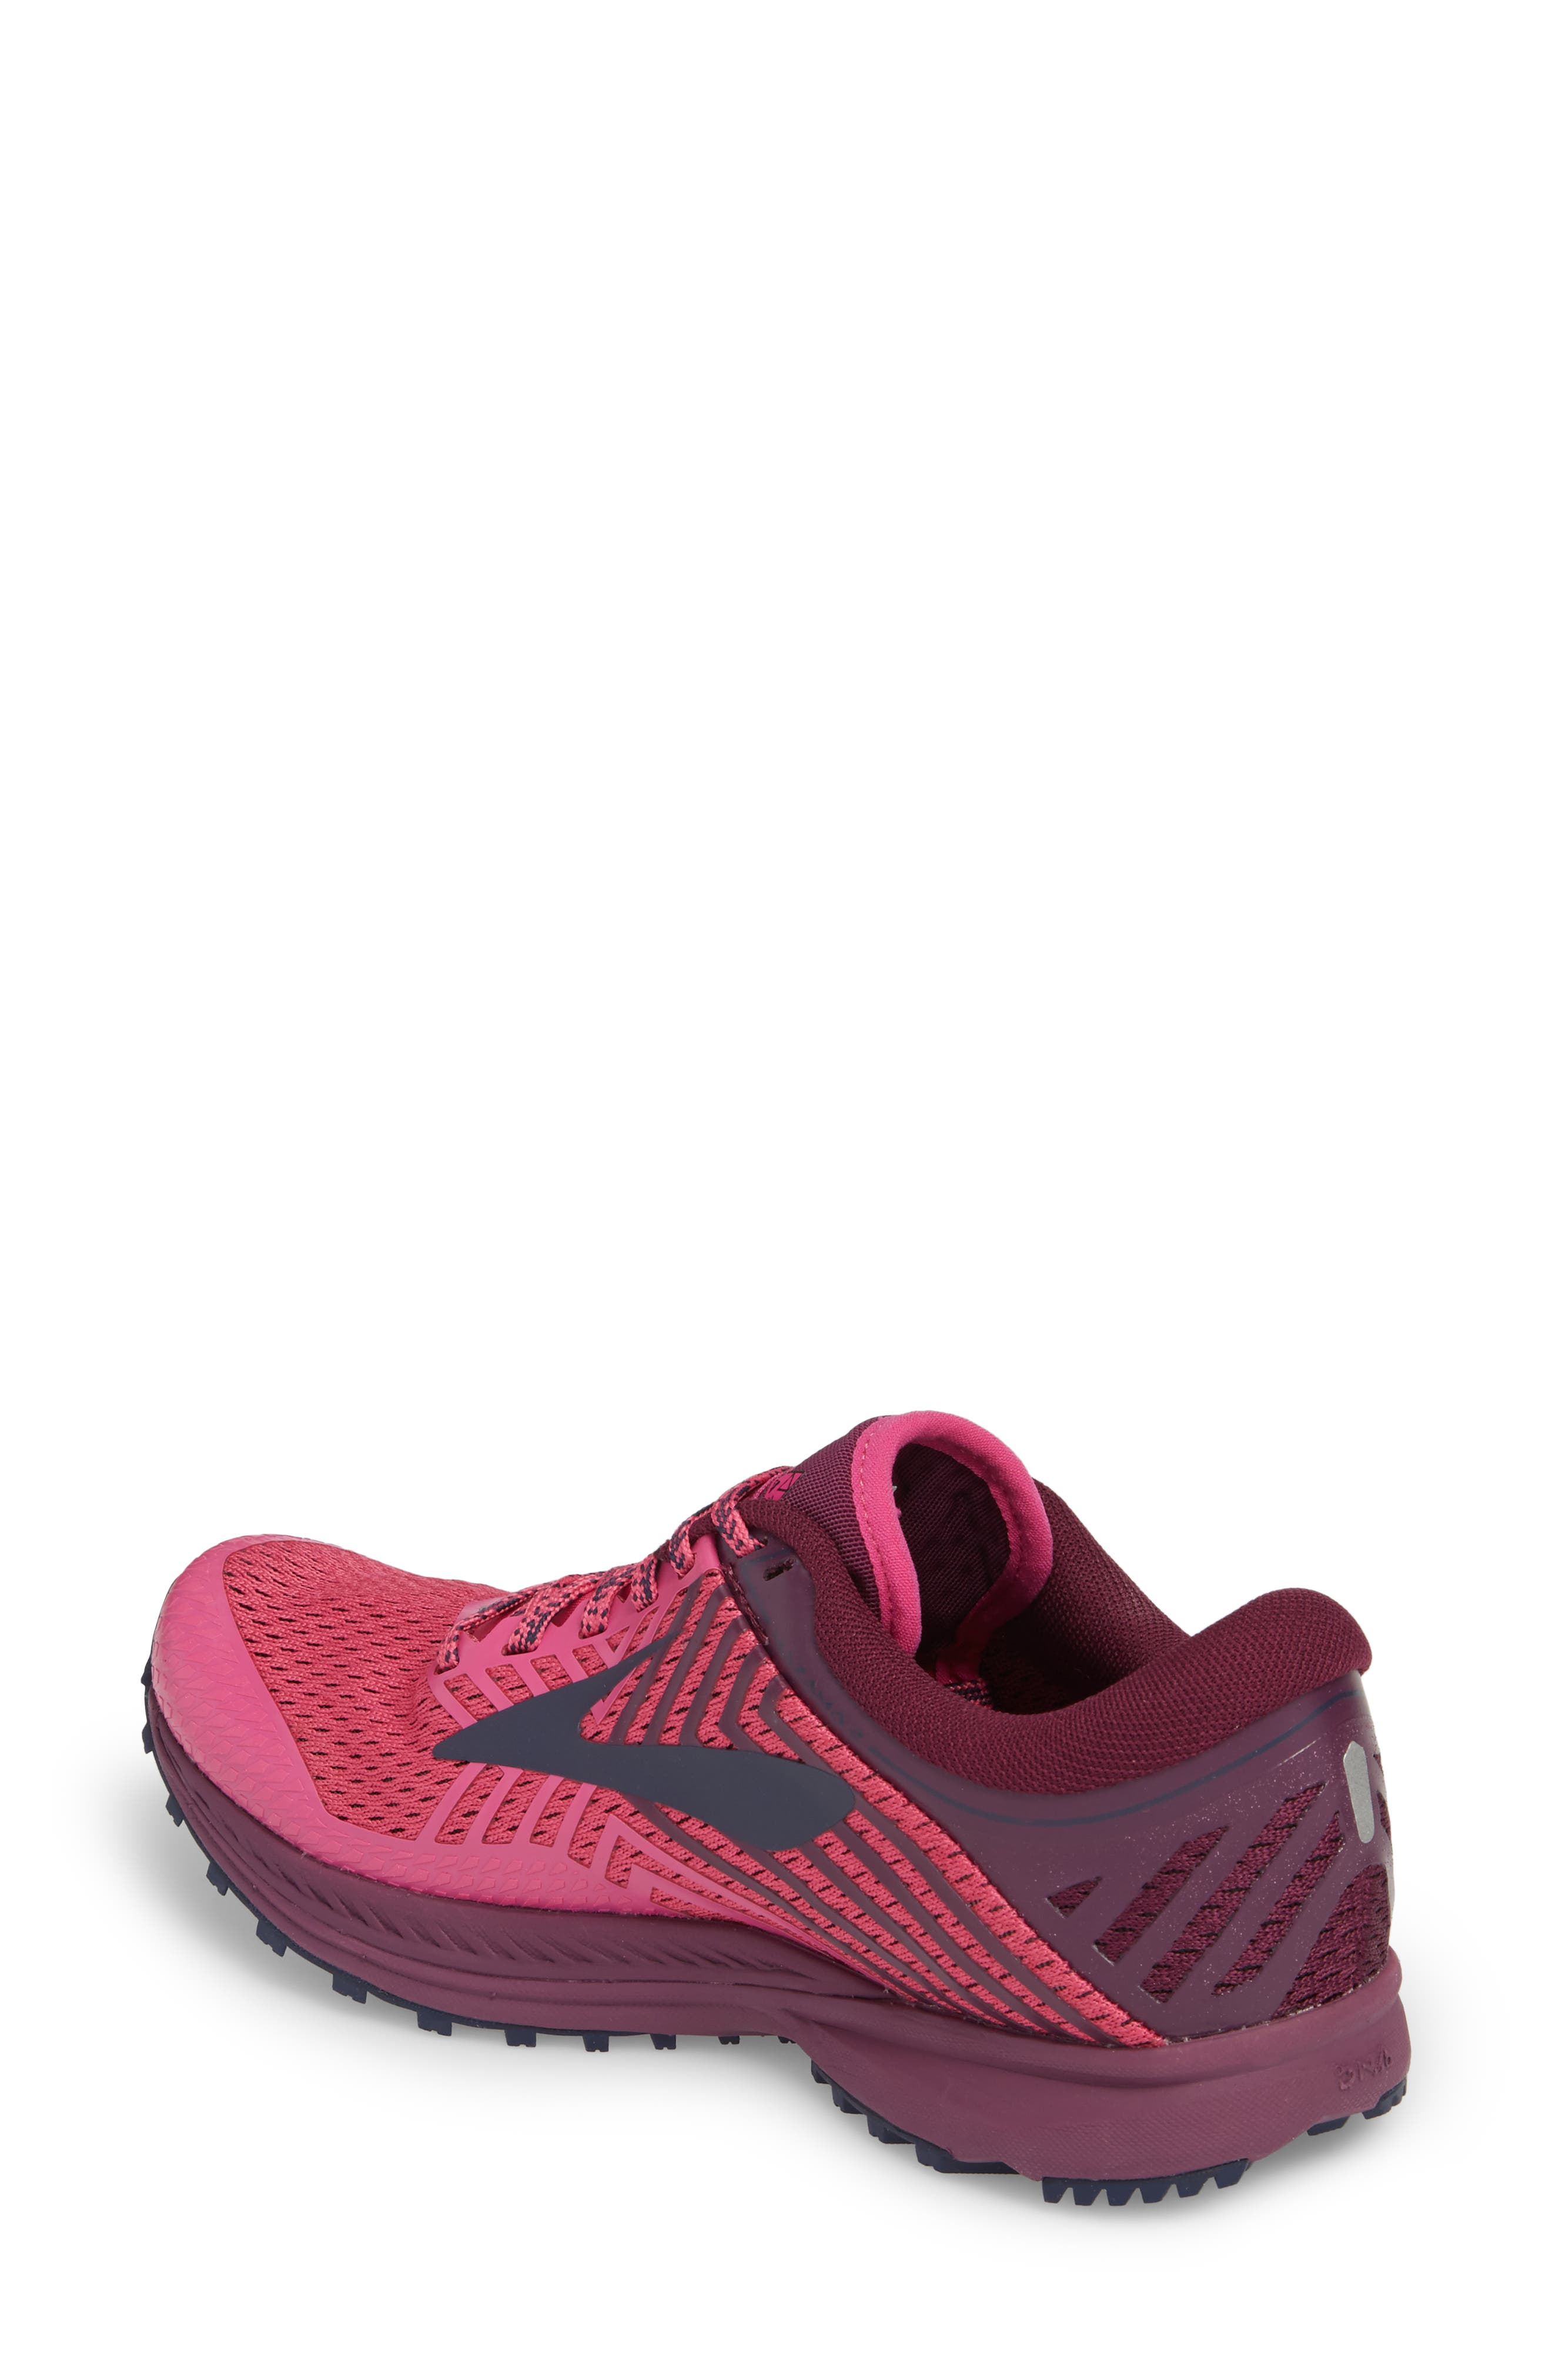 Alternate Image 2  - Brooks Mazama 2 Trail Running Shoe (Women)